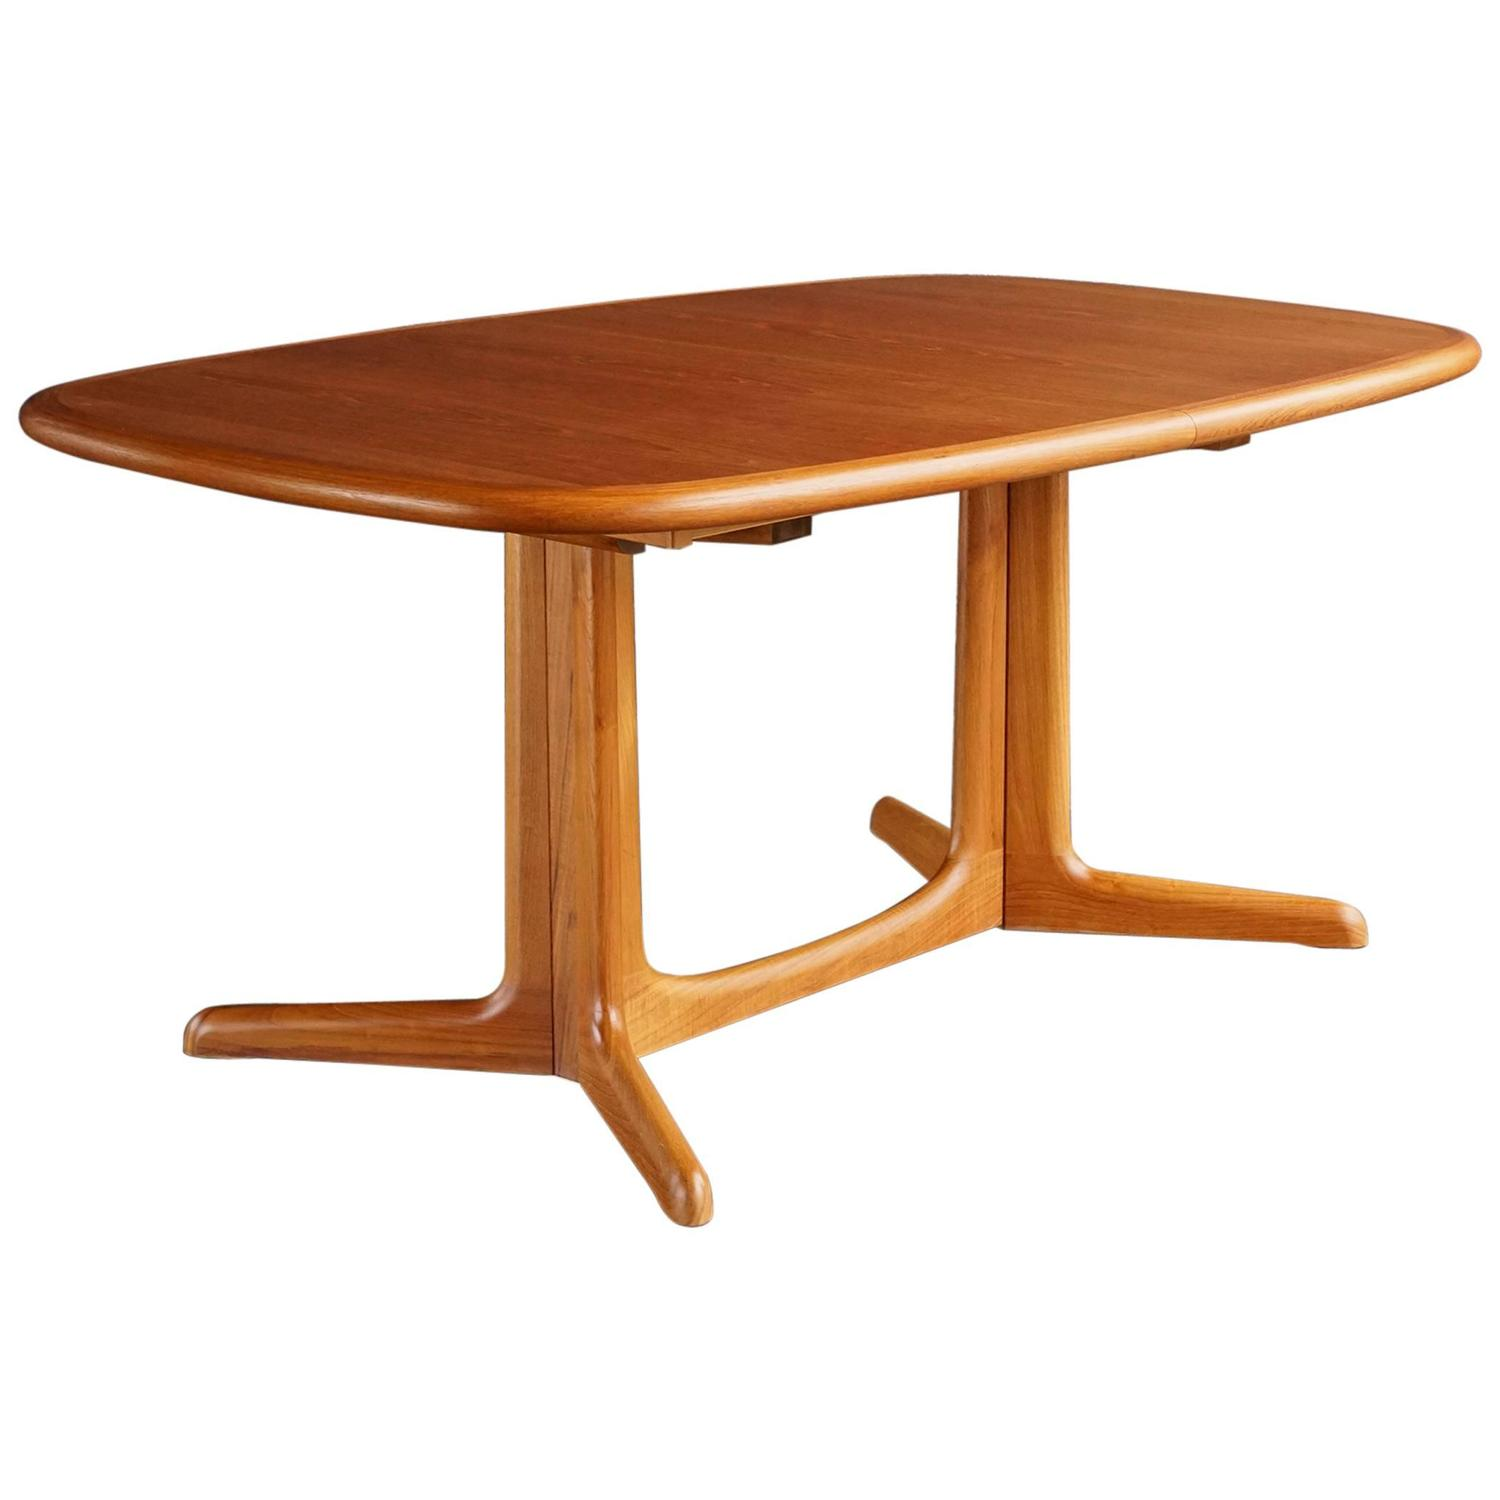 Danish extension dining table at 1stdibs for Extension dining table